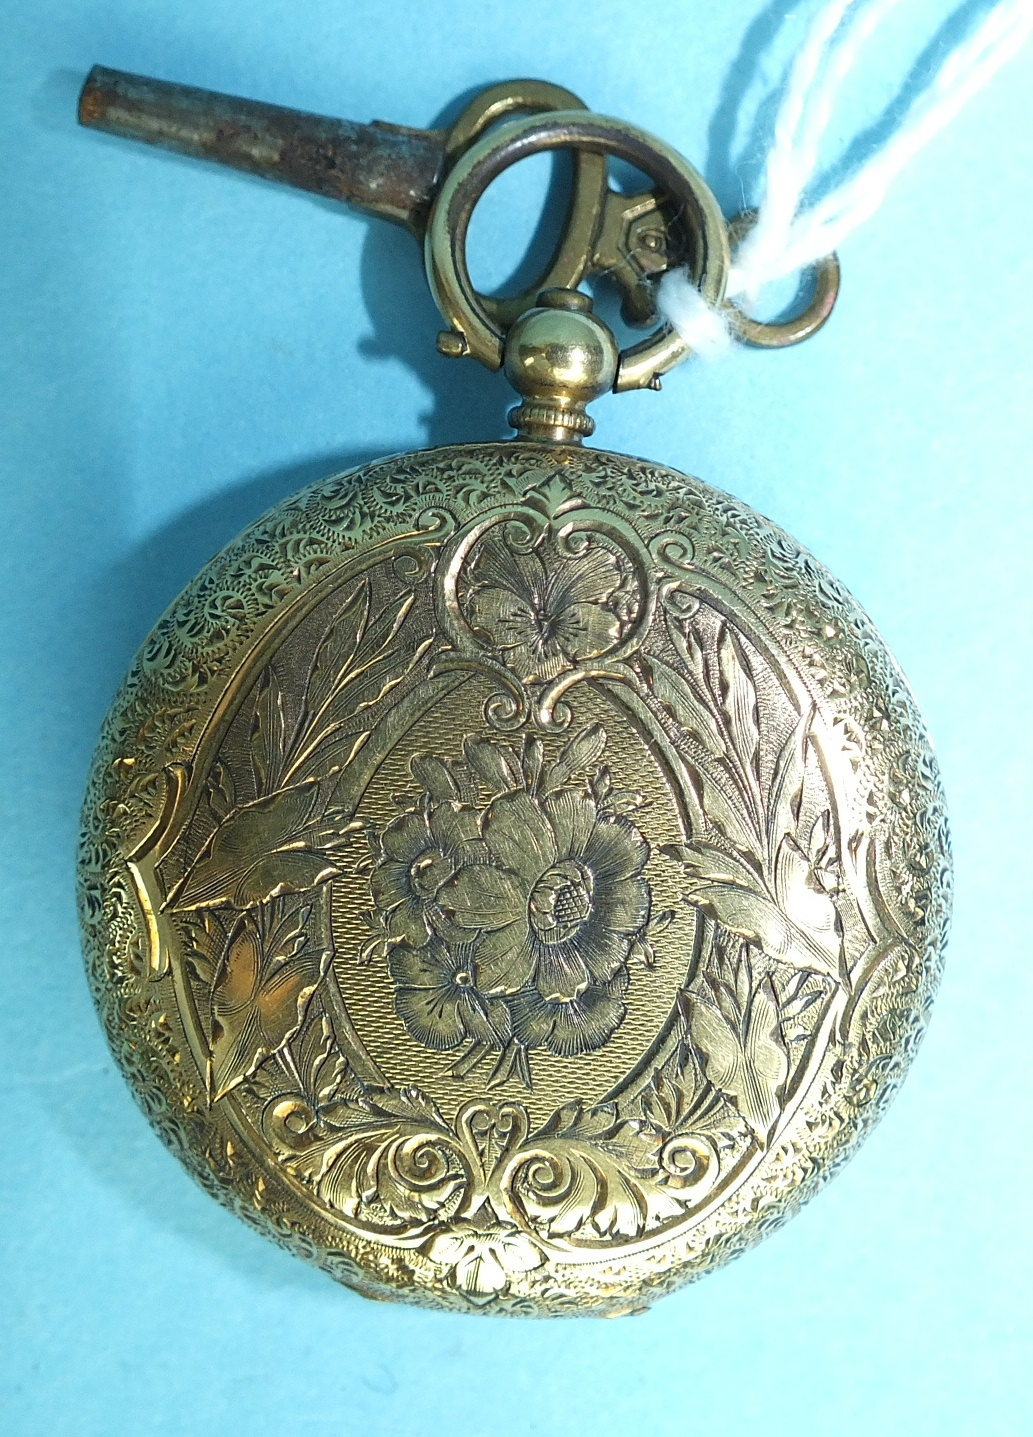 Lot 144 - A ladies Continental 18k-gold-cased open-face key-wind pocket watch, the engraved gold face with